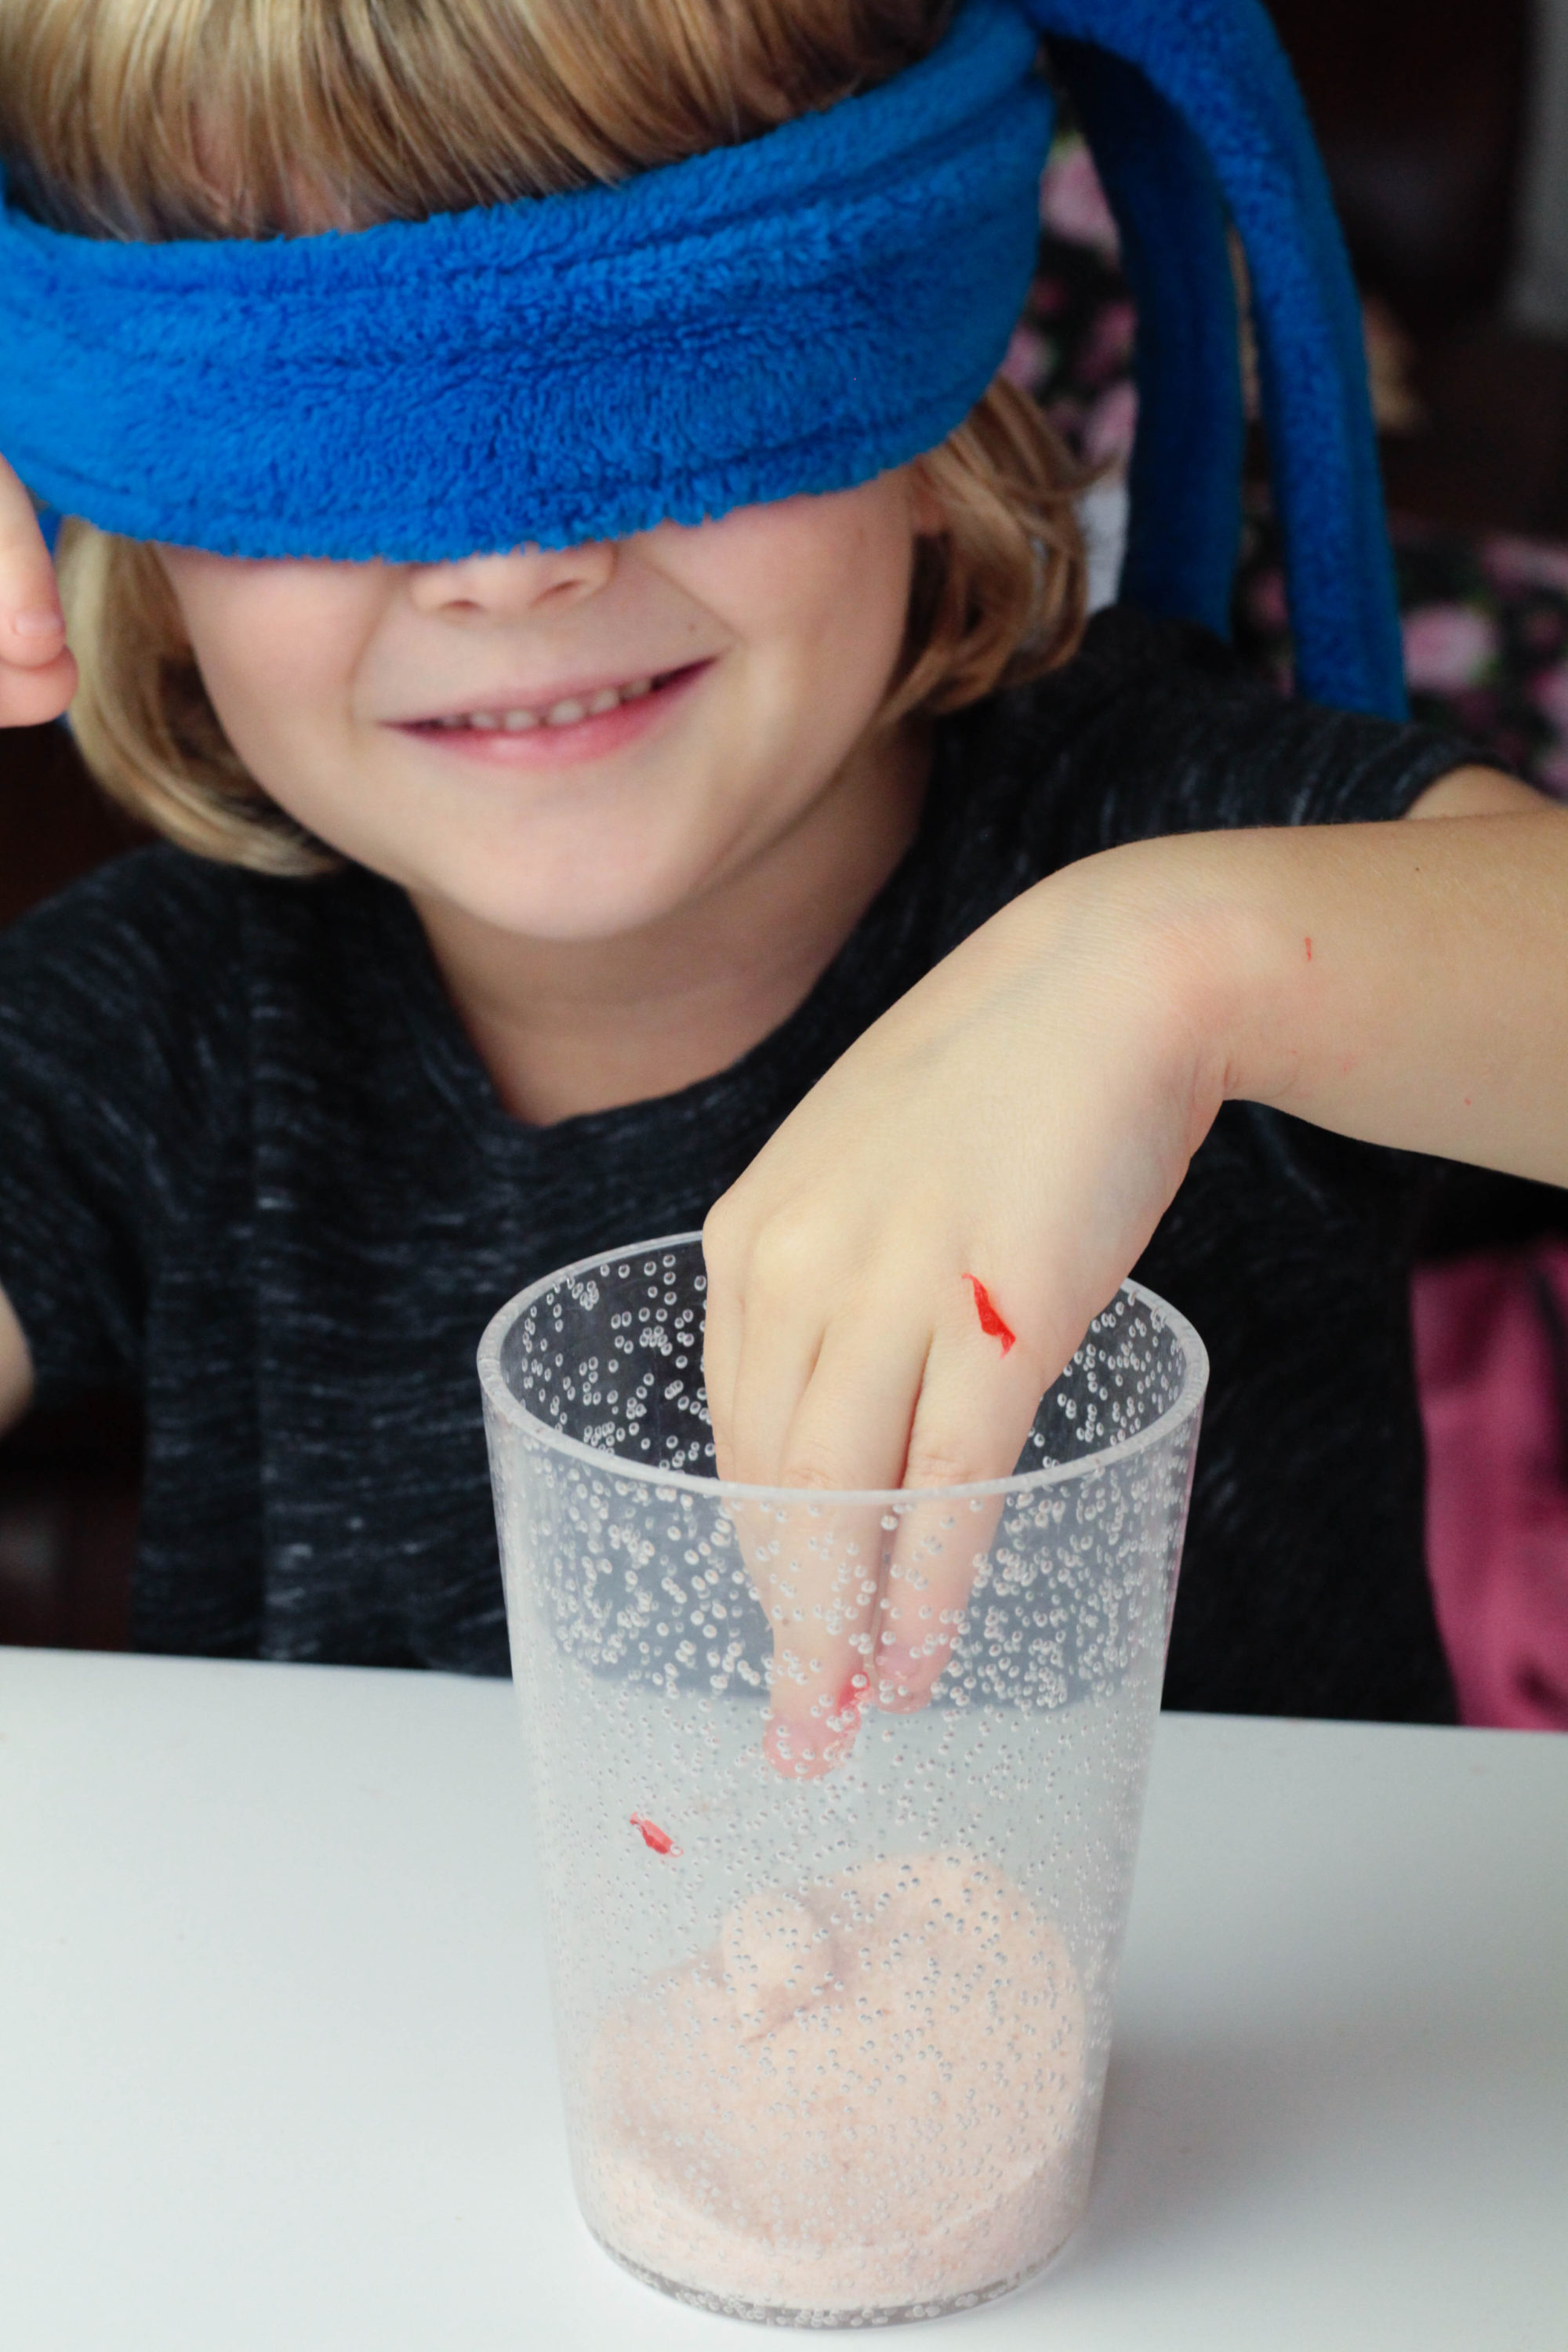 Explore your senses in this sensory blindfold science activity perfect for preschoolers and kindergarten kids. Science has never been so fun!